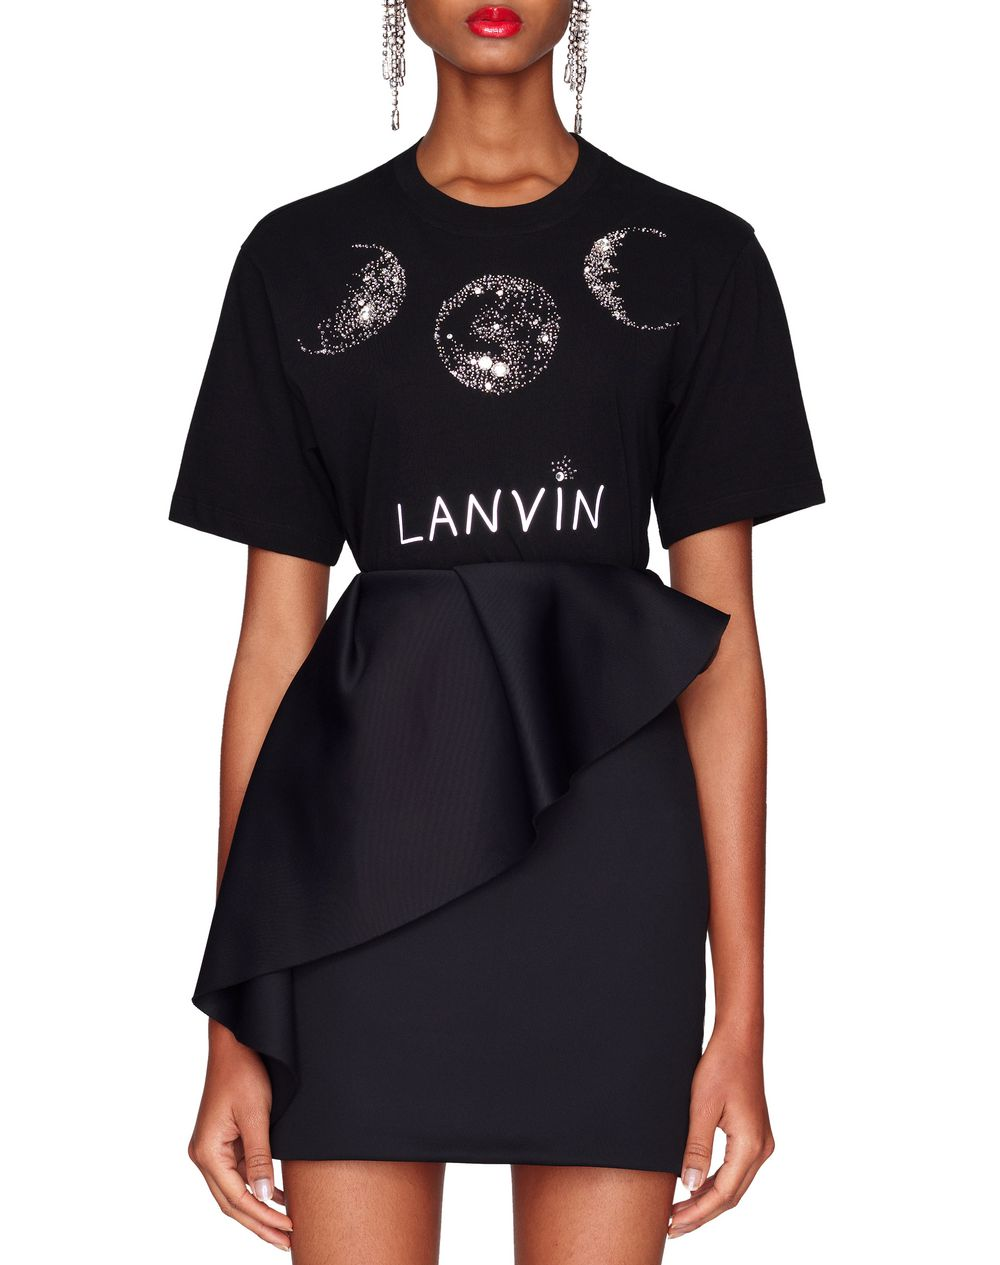 SHORT BLACK SKIRT - Lanvin